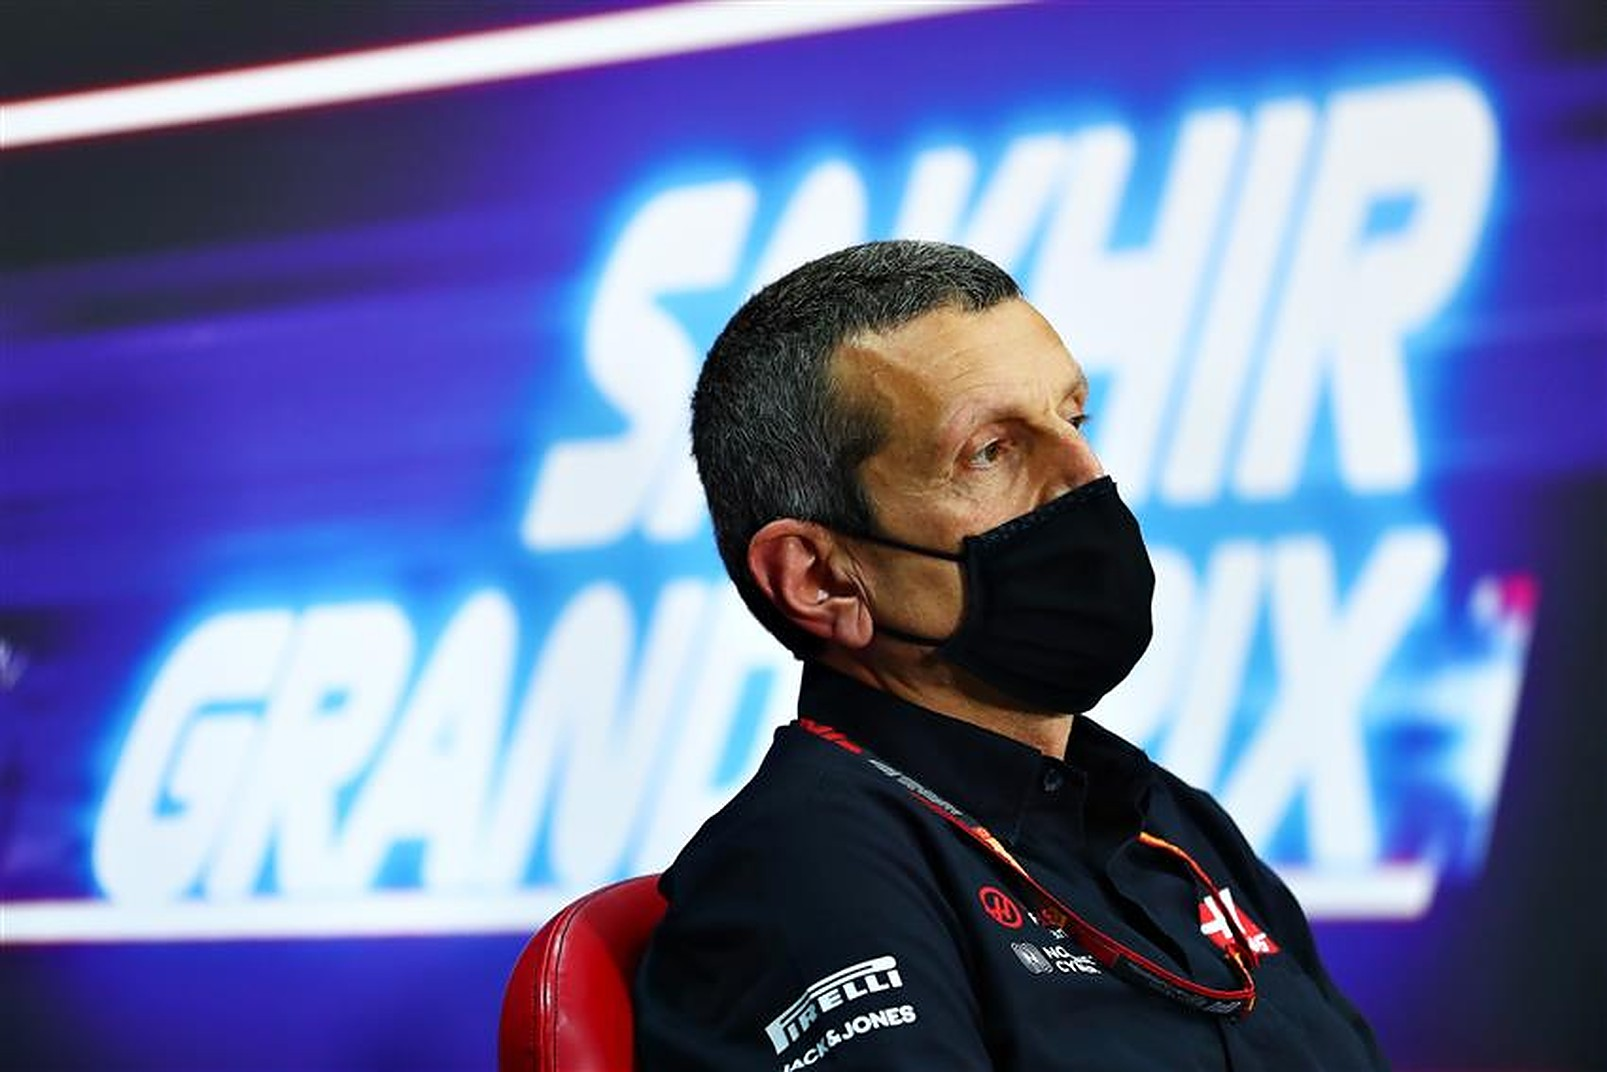 Guenther Steiner speaks out on Nikita Mazepin groping incident - Formula1news.co.uk